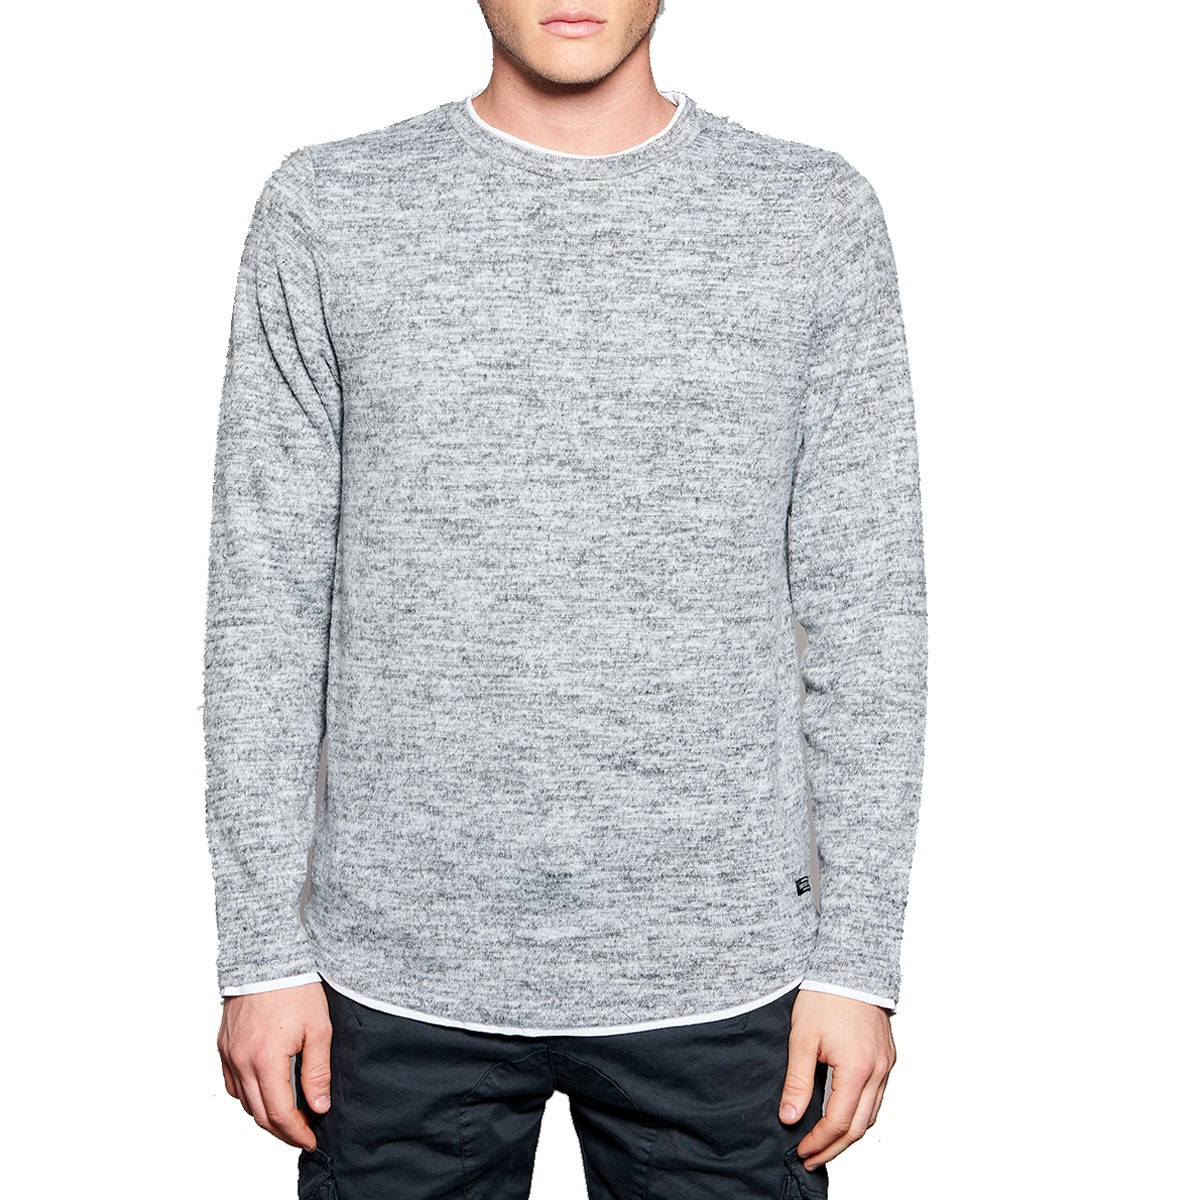 longues gris manches Deeluxe T CCV shirt Mode homme 48EwUy6cq